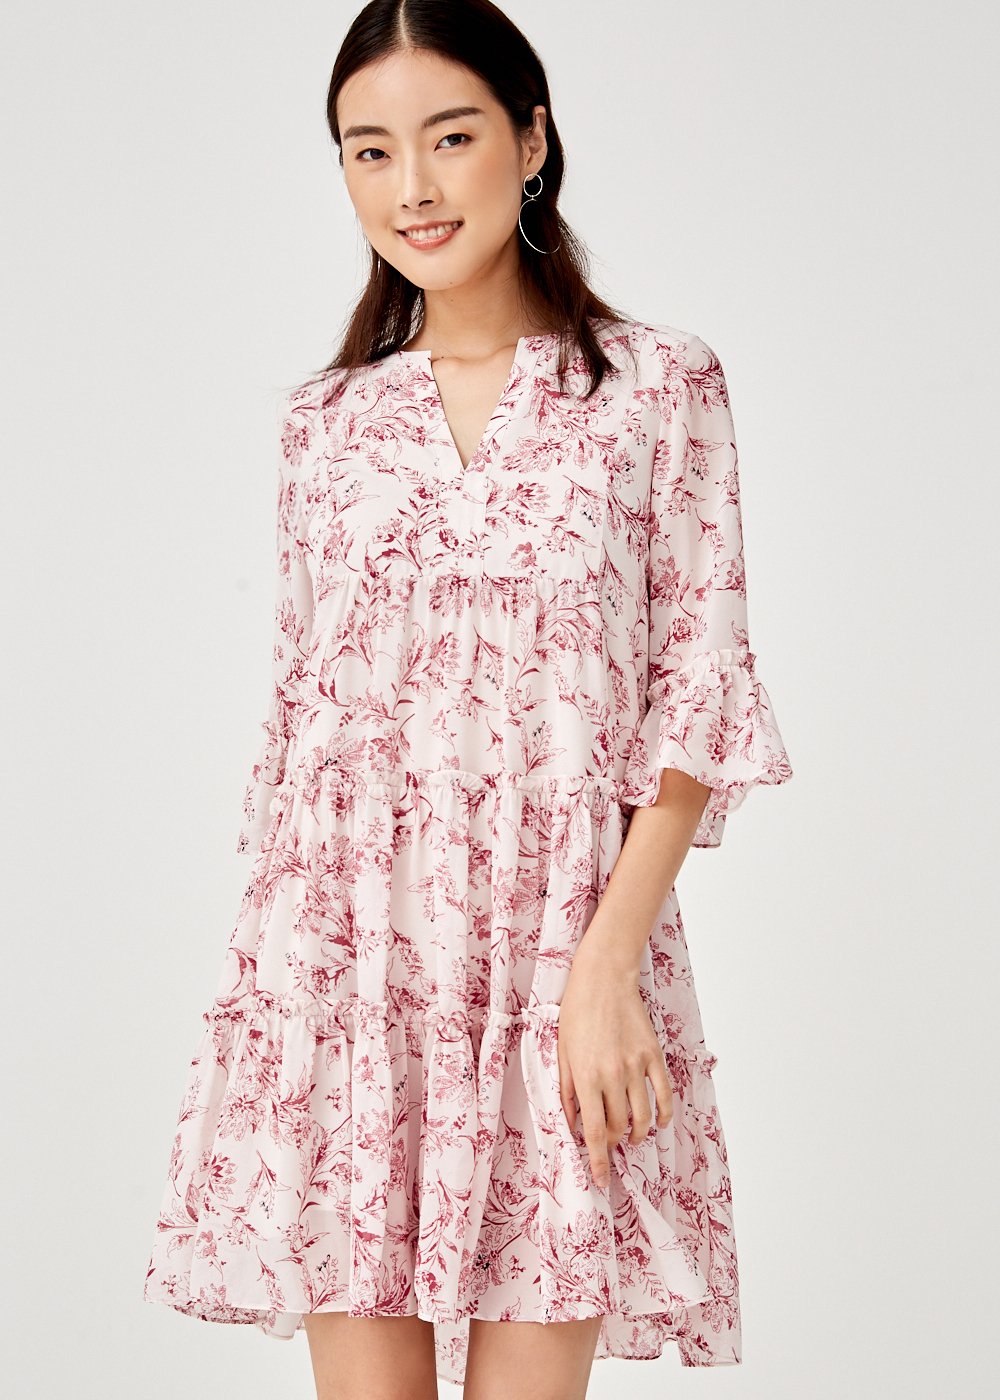 Felicia Ruffle Hem Swing Dress